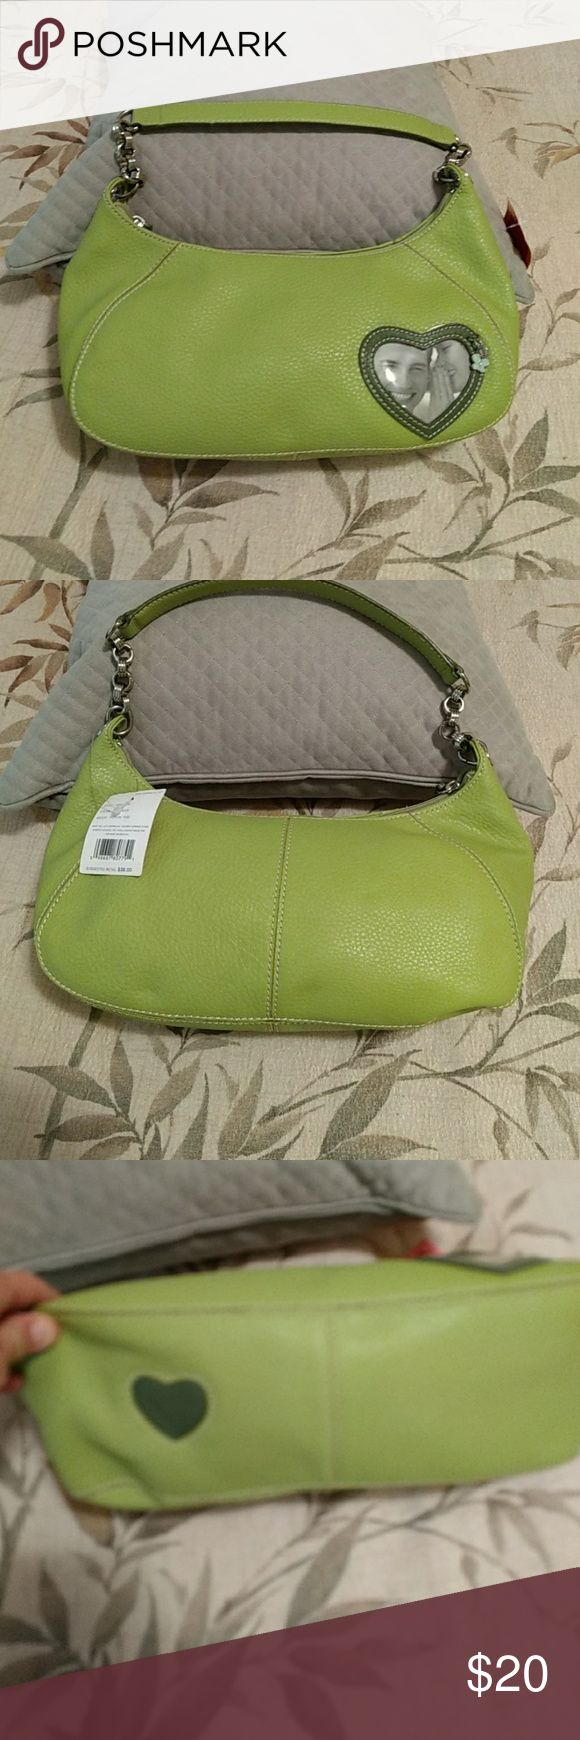 "NWT Liz Claiborne green purse NEW Liz Claiborne green ""Picture This"" purse. Has a heart shaped photo holder on the front with a charm. Super cute!   Measurements are 12"" lengthwise on base and 6"" in height (see new pics). Thanks for looking! Liz Claiborne Bags Shoulder Bags"